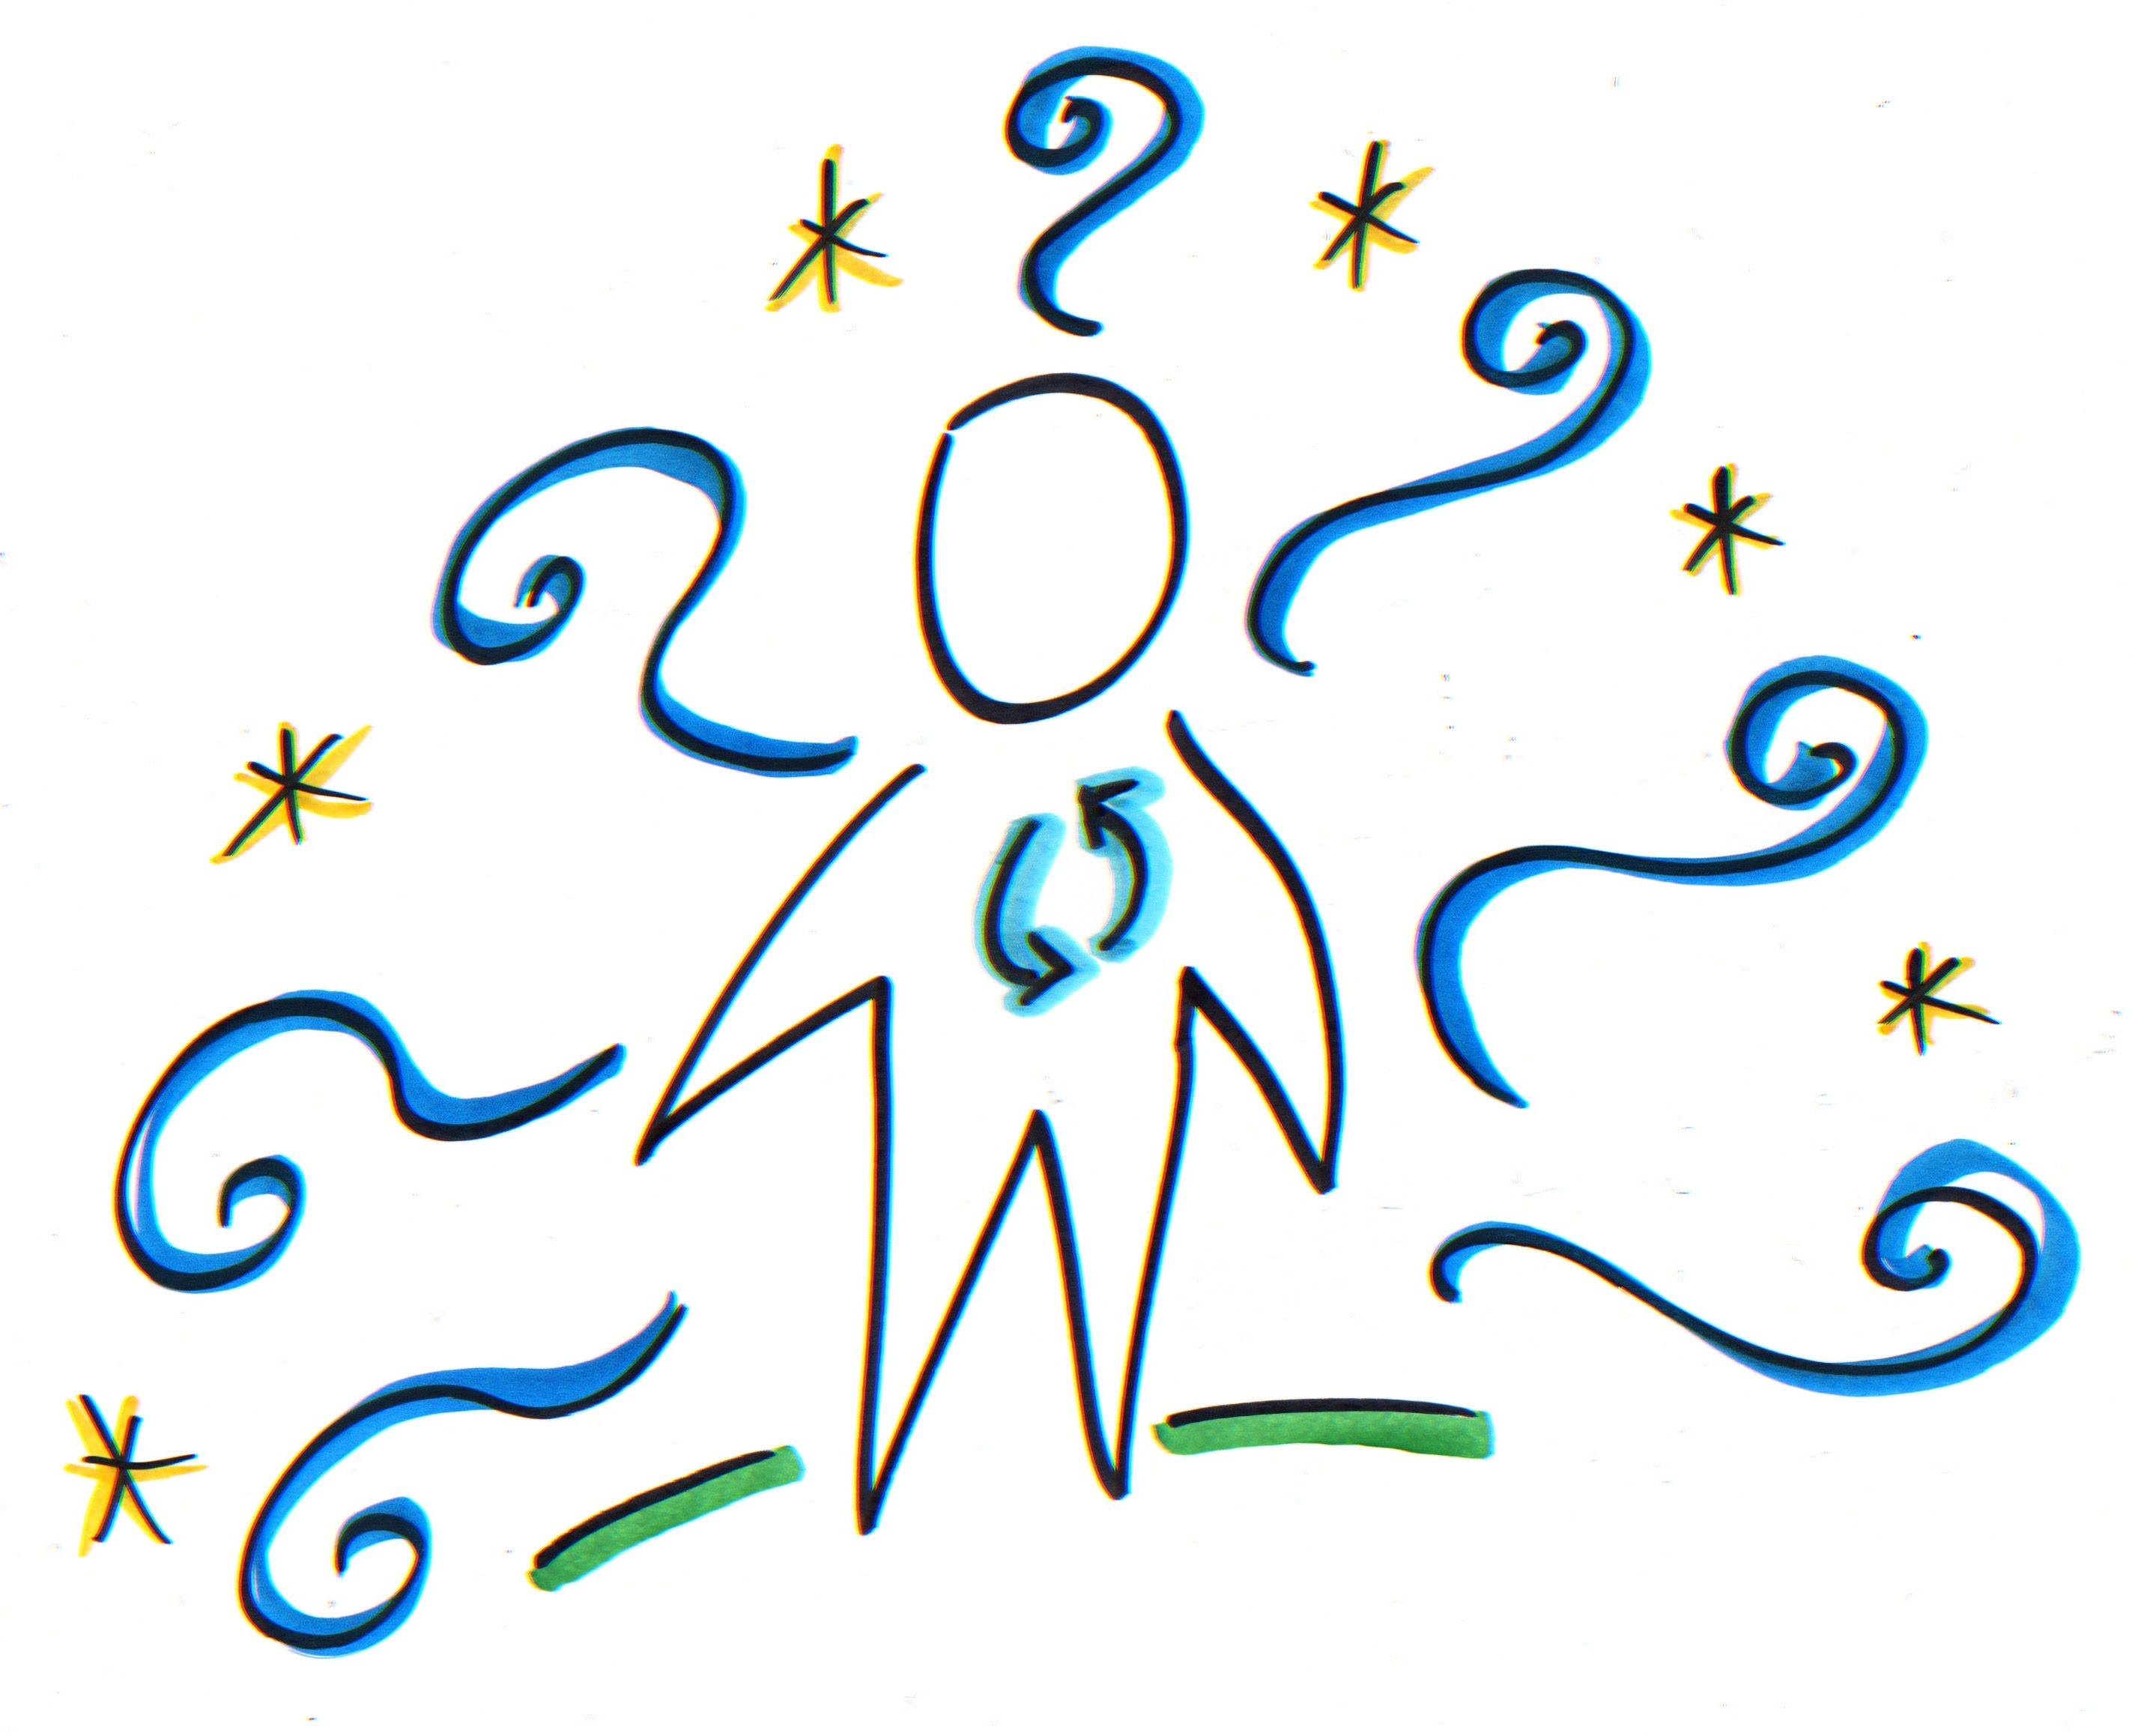 Breath clipart mindful breathing. Jeannelking com three tips